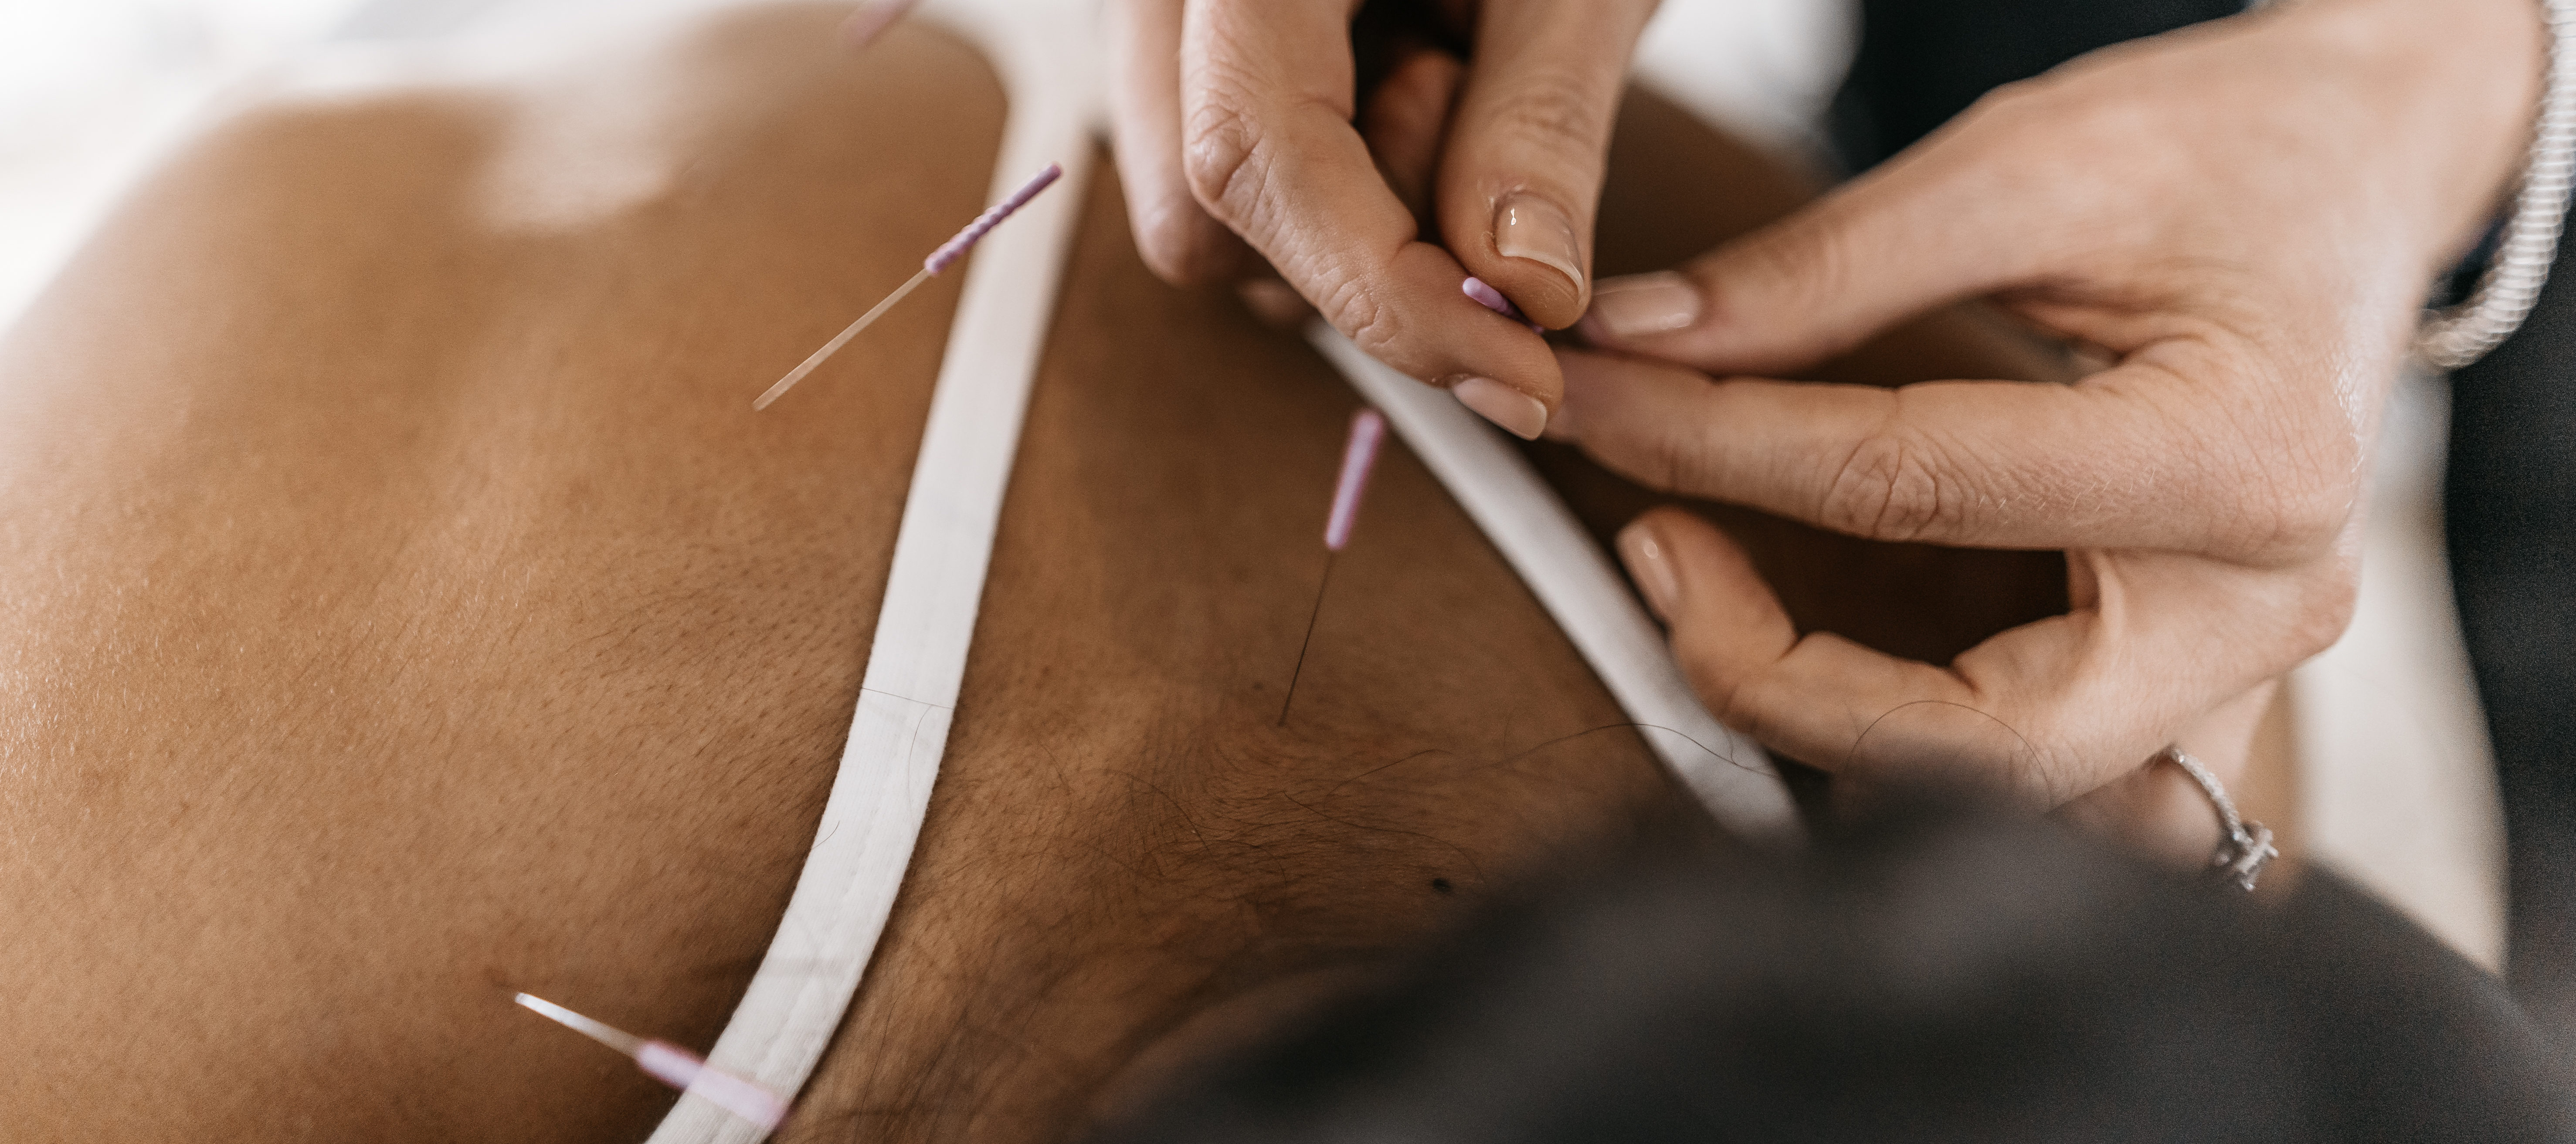 Tampa acupuncturist science behind acupuncture